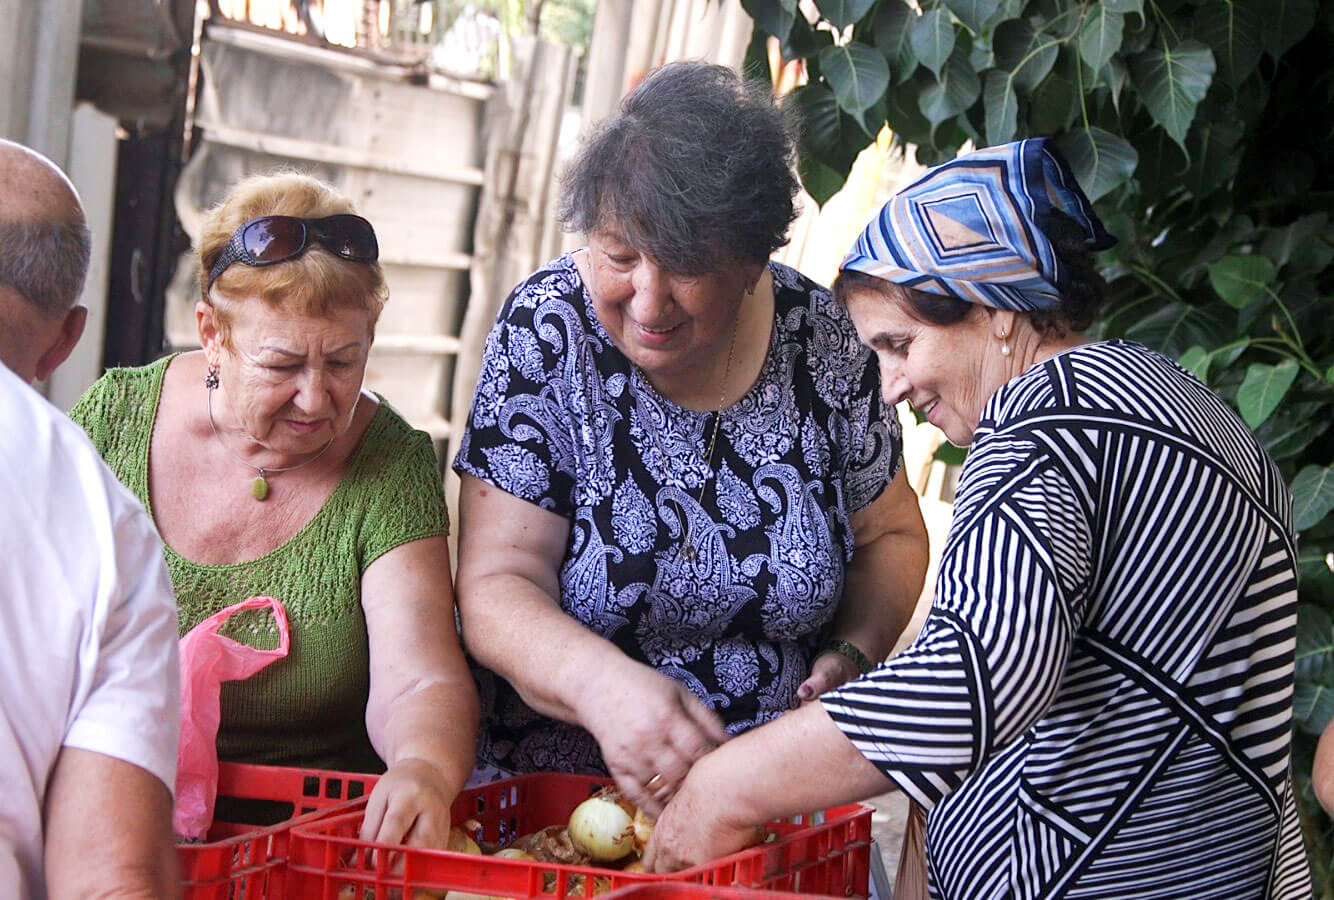 Two elderly day centers servicing over 100 guests, one in five being a holocaust survivor.